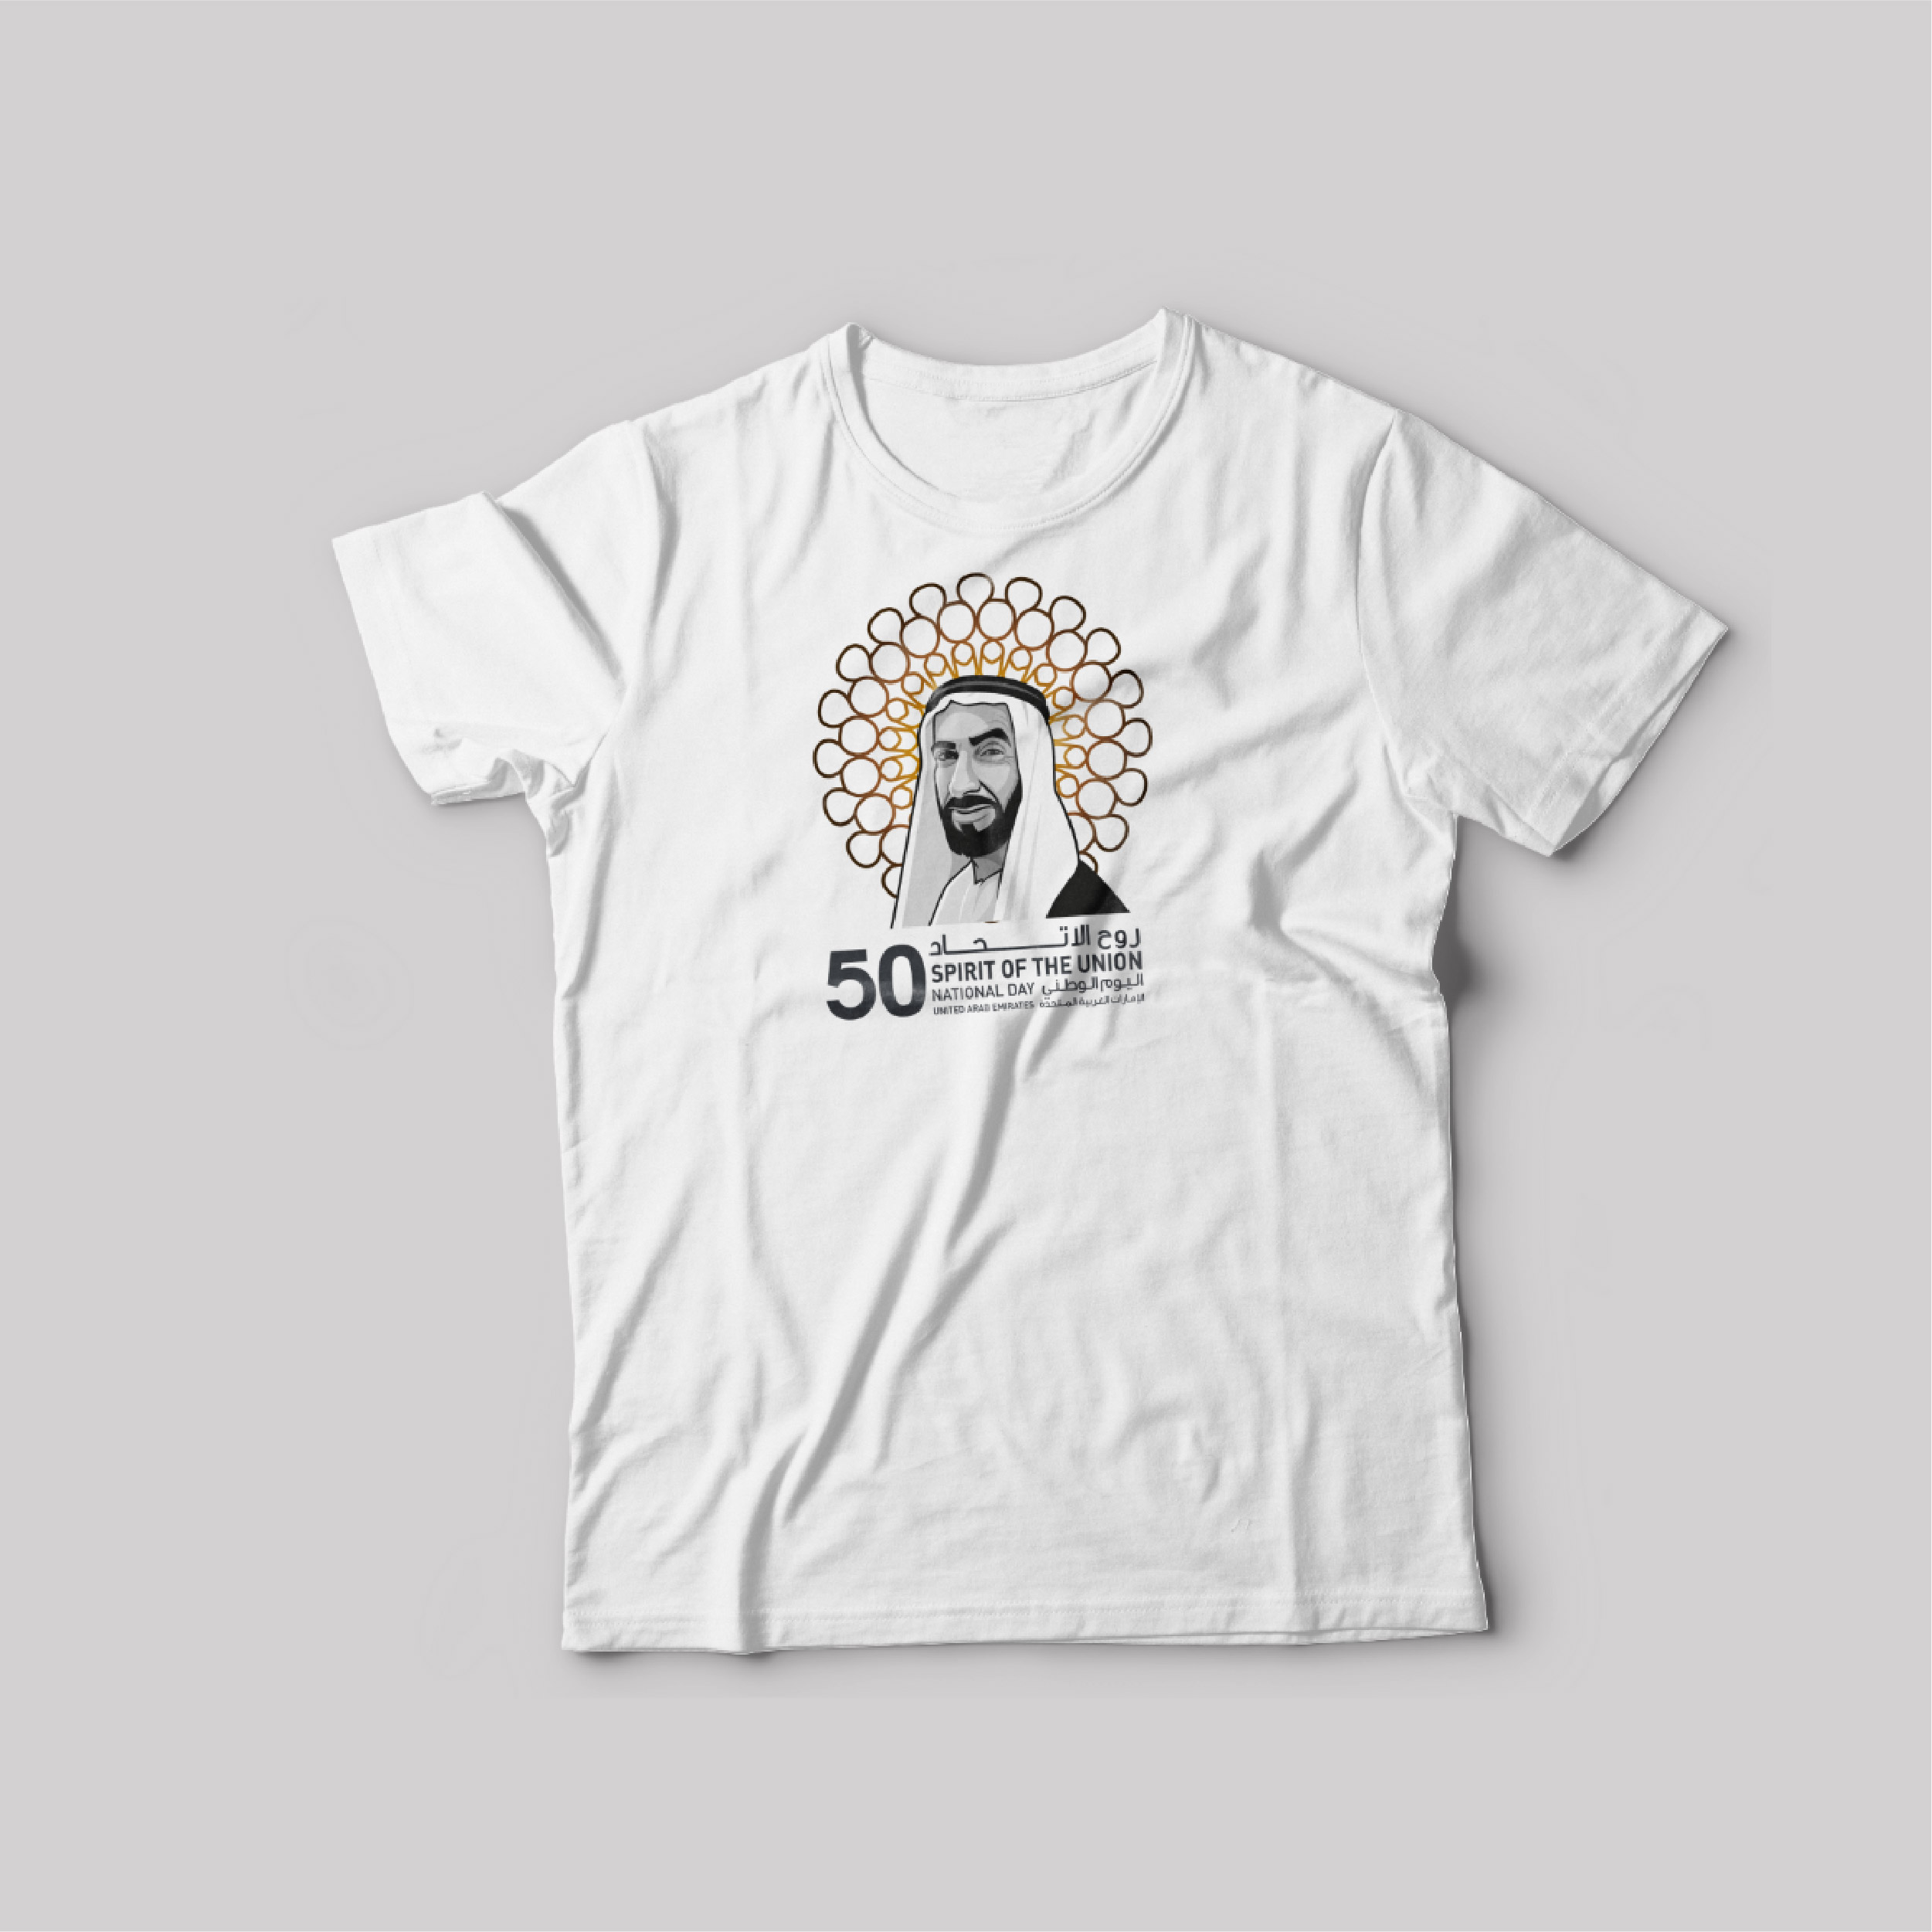 UAE National day T-Shirt White Round Neck For Unisex Expo 2020 logo  & 50 years Sprit of Unoin